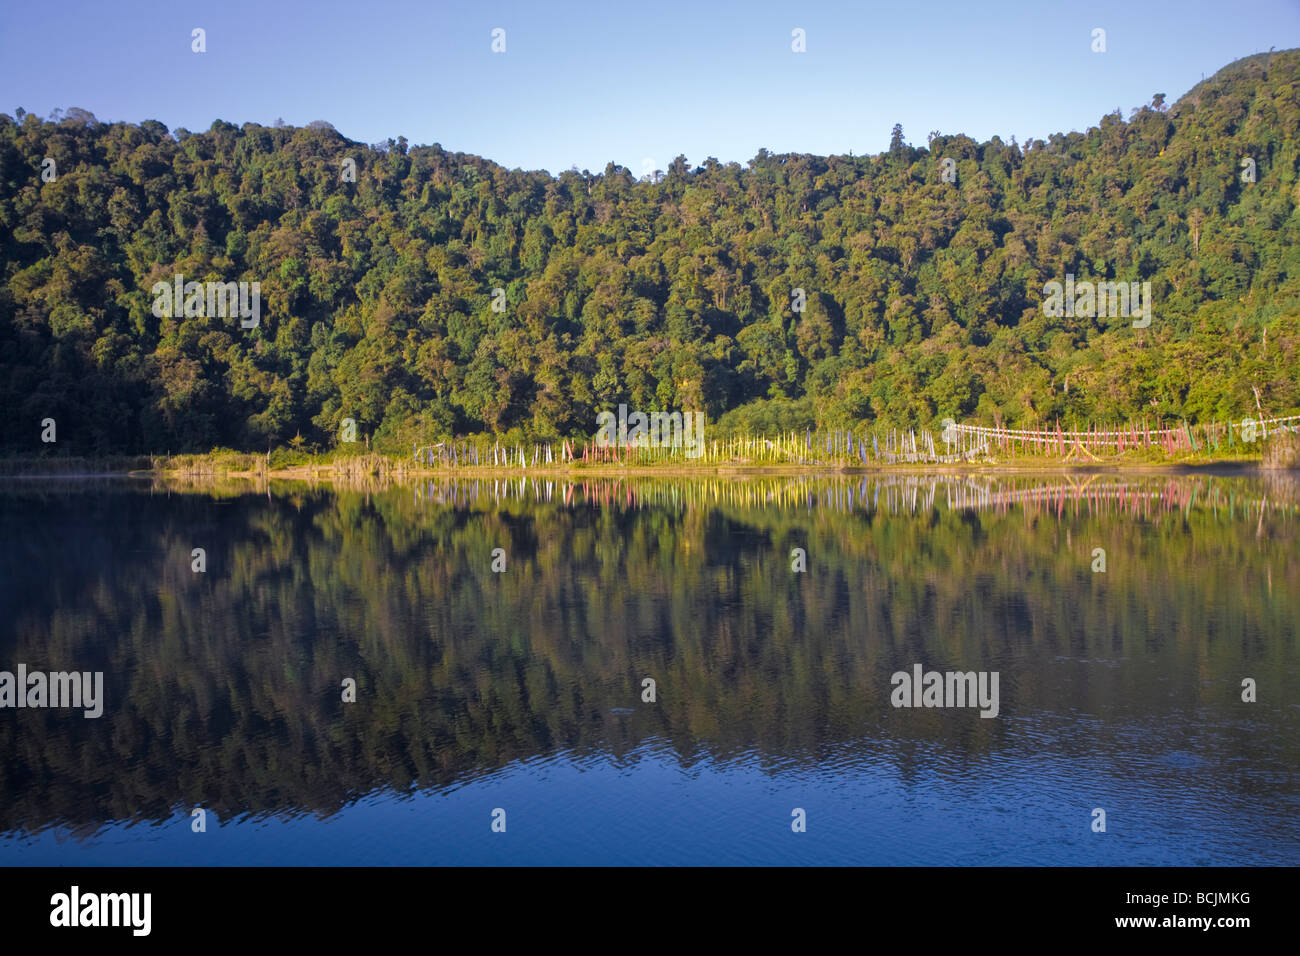 India, Sikkim, Khecheopalri Lake, - Holy lake highly revered by Sikkimese Buddhists - Stock Image